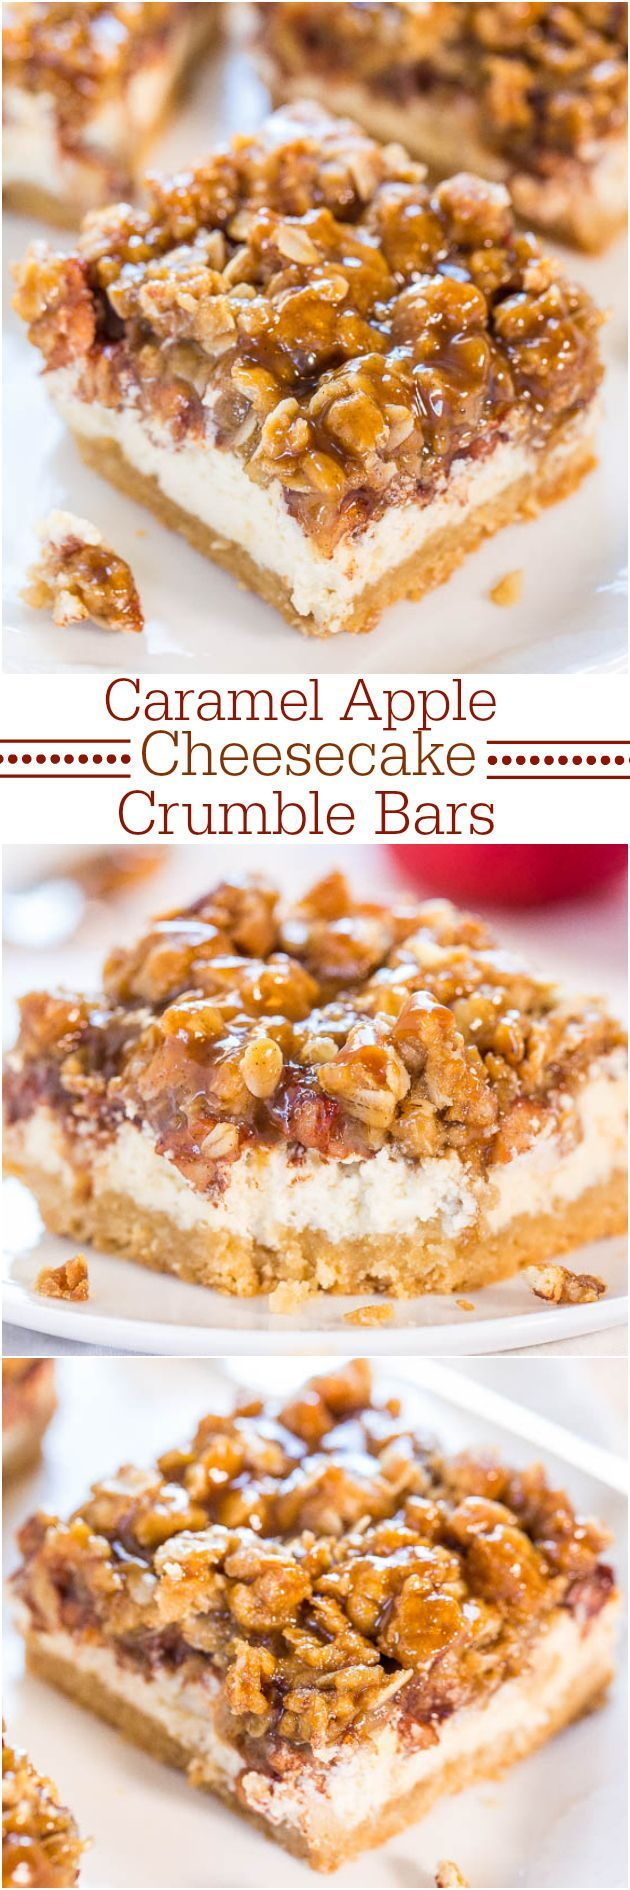 Caramel Apple Cheesecake Crumble Bars - Move over apple pie! These are an apple…